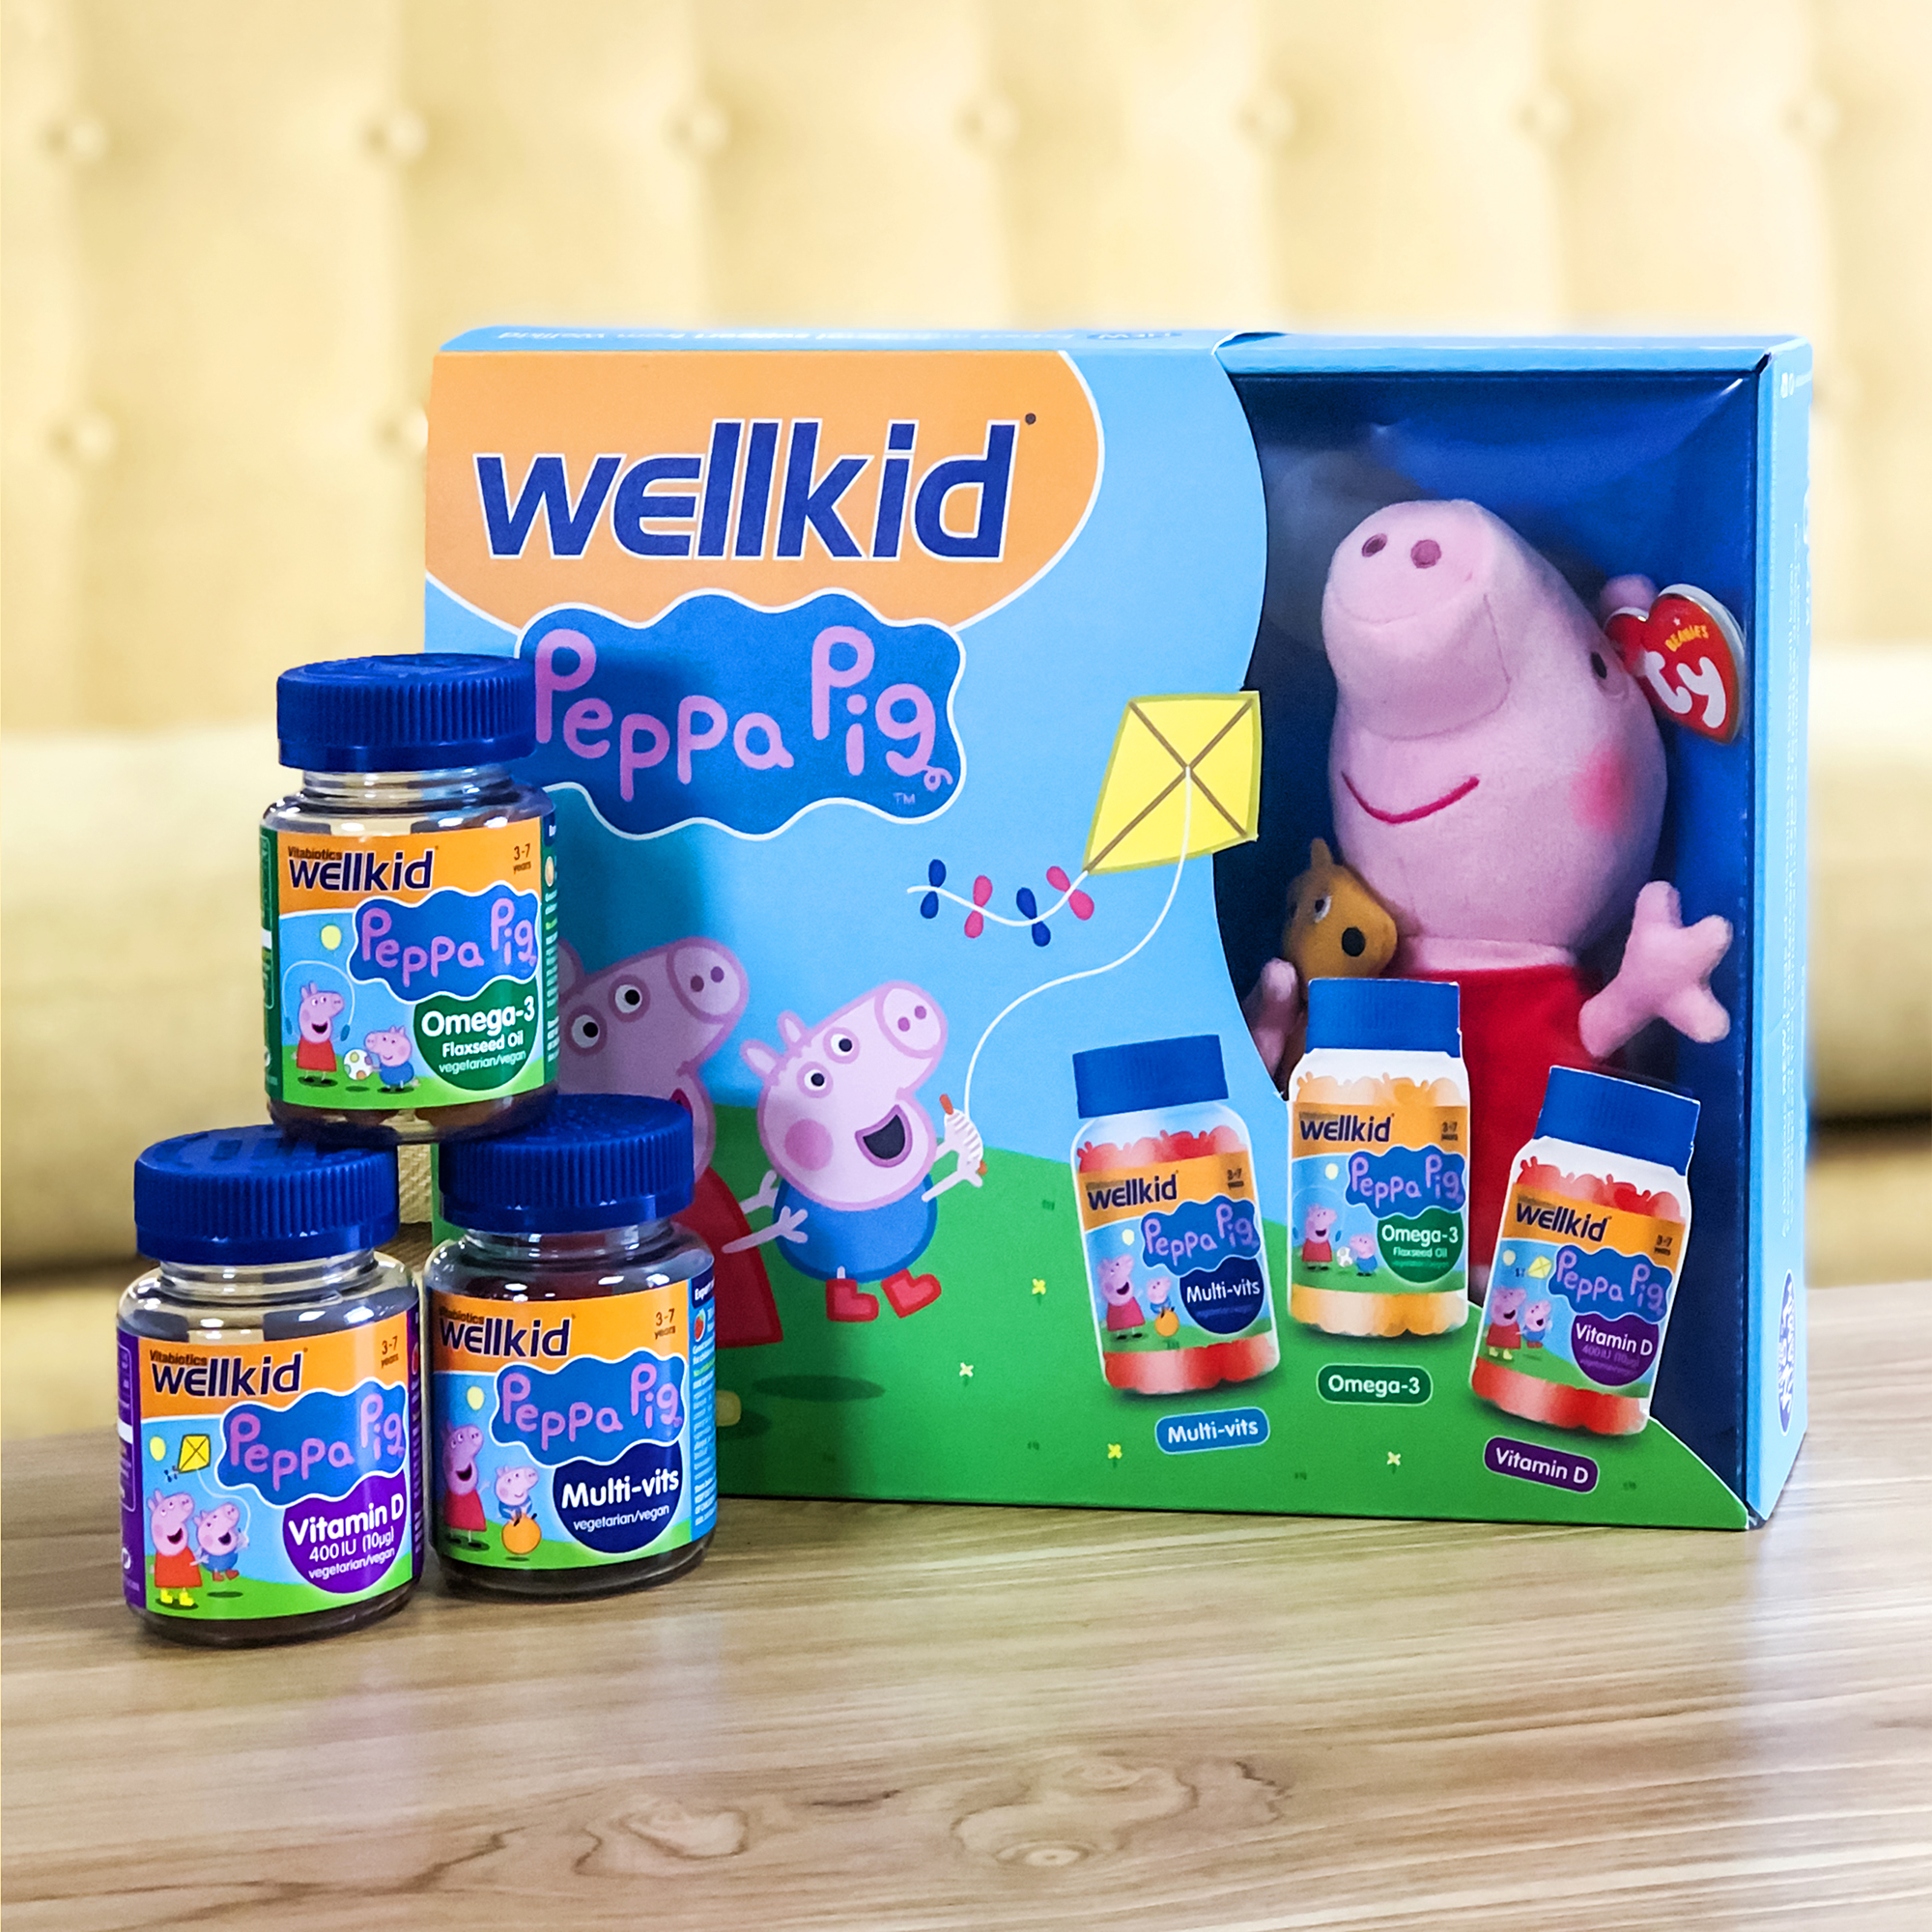 Wellkid Peppa Pig vitamins